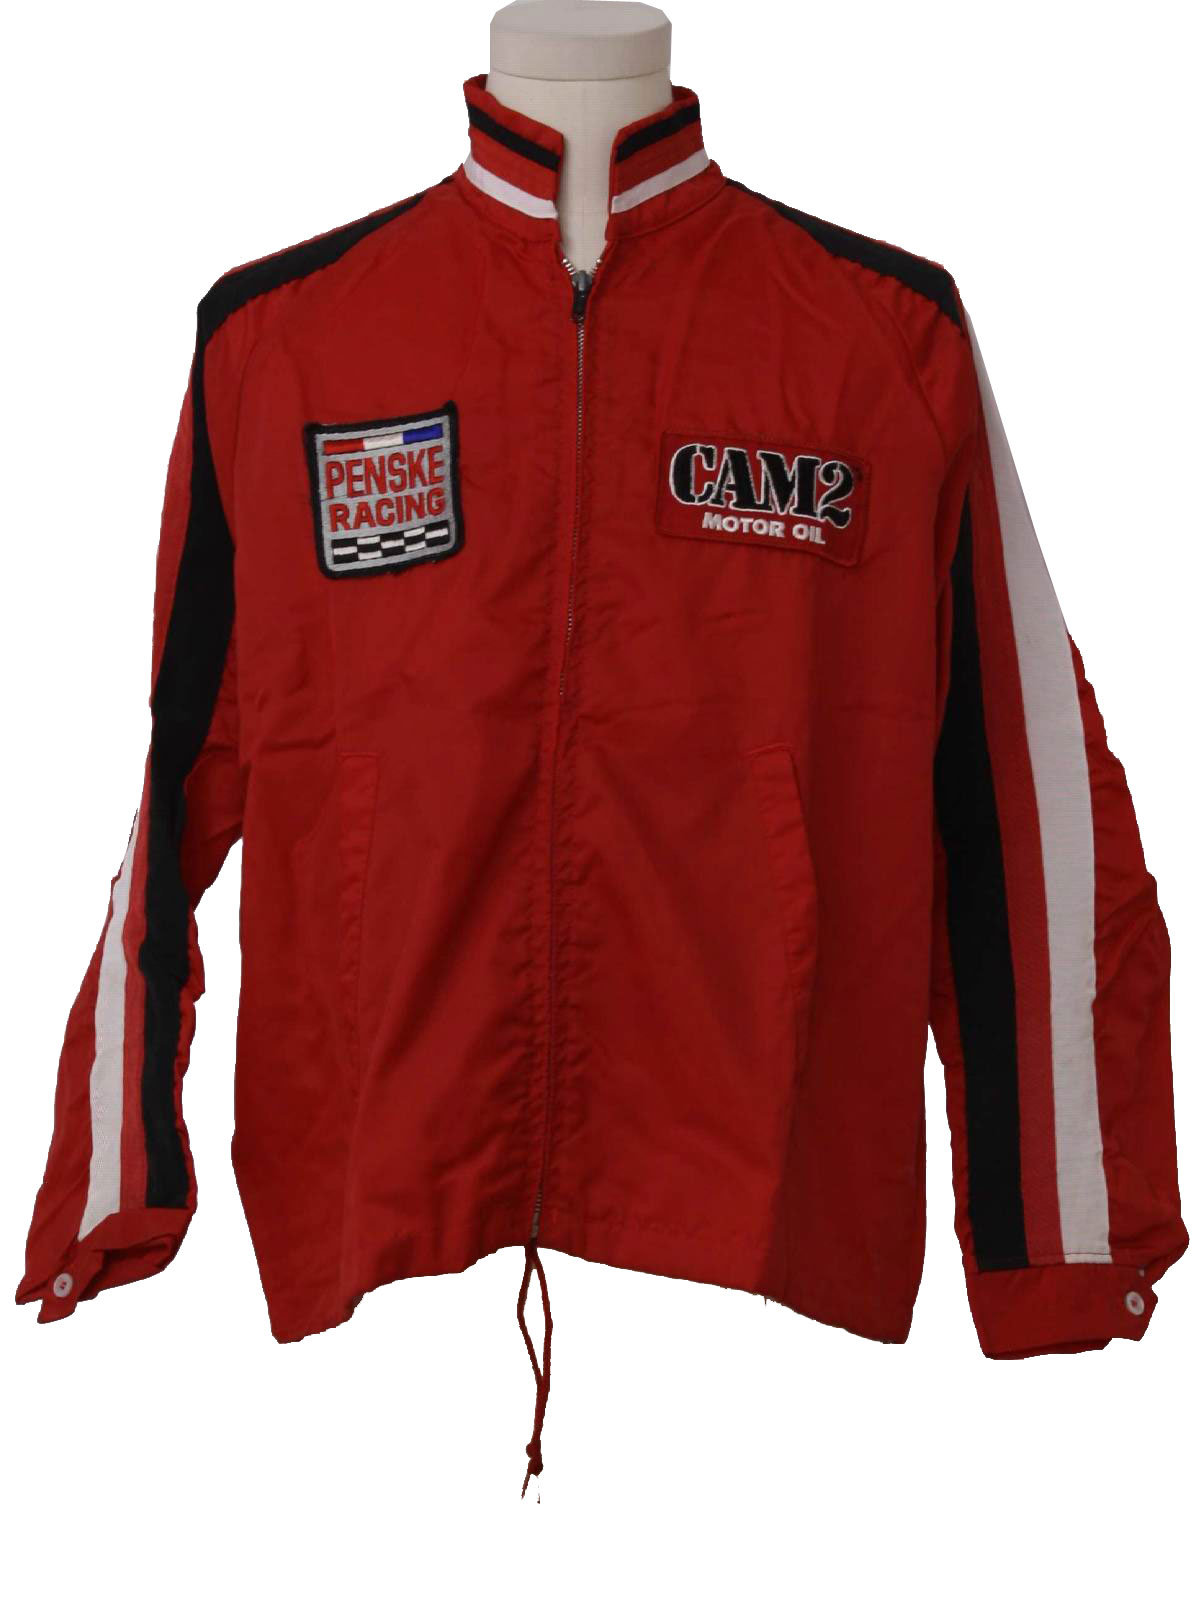 Retro 1980's Jacket (Swingster) : 80s -Swingster- Mens red, black ...